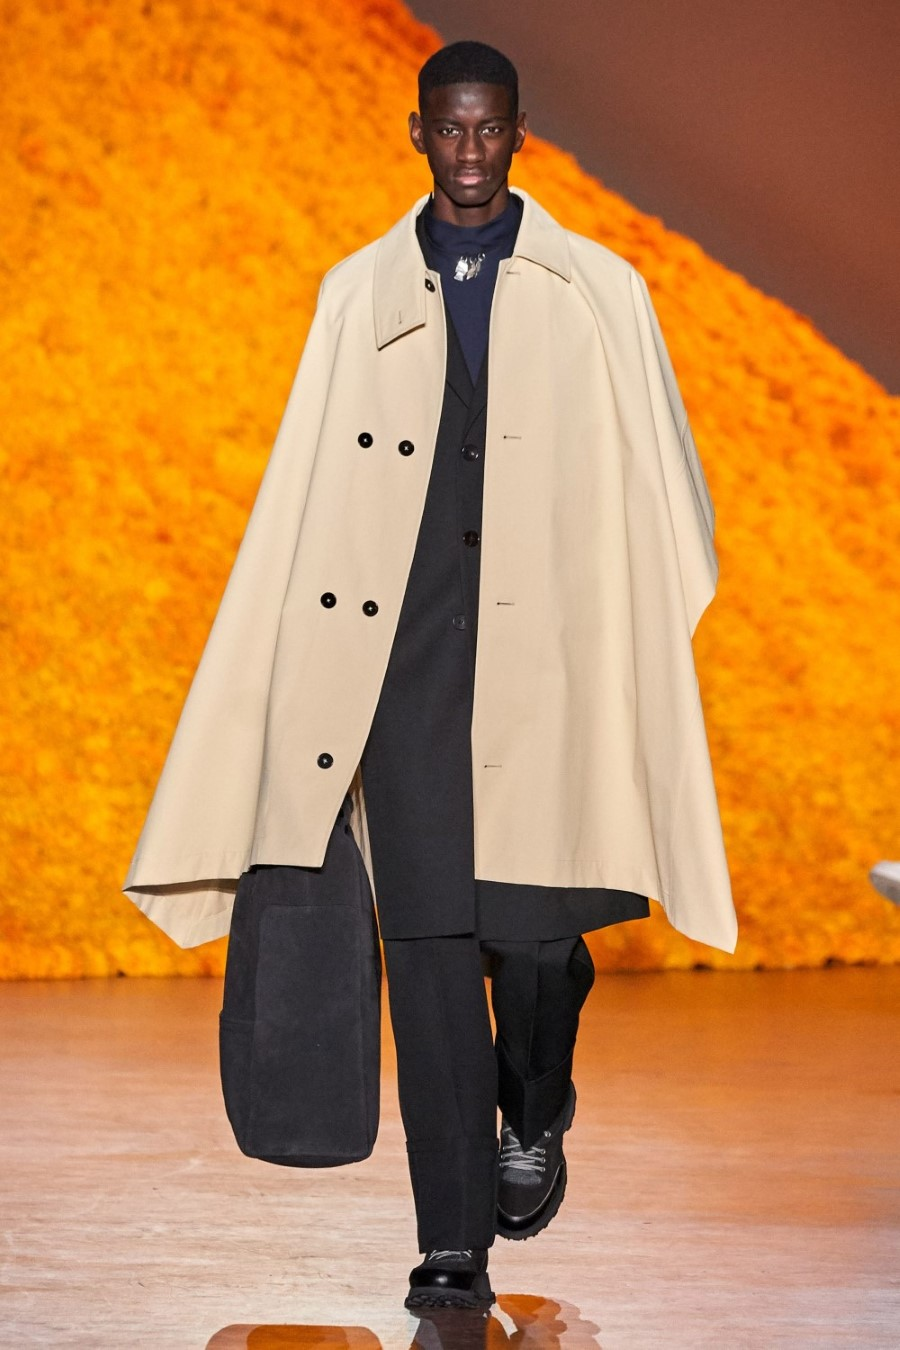 Jil Sander - Fall Winter 2020 - Pitti Uomo 97